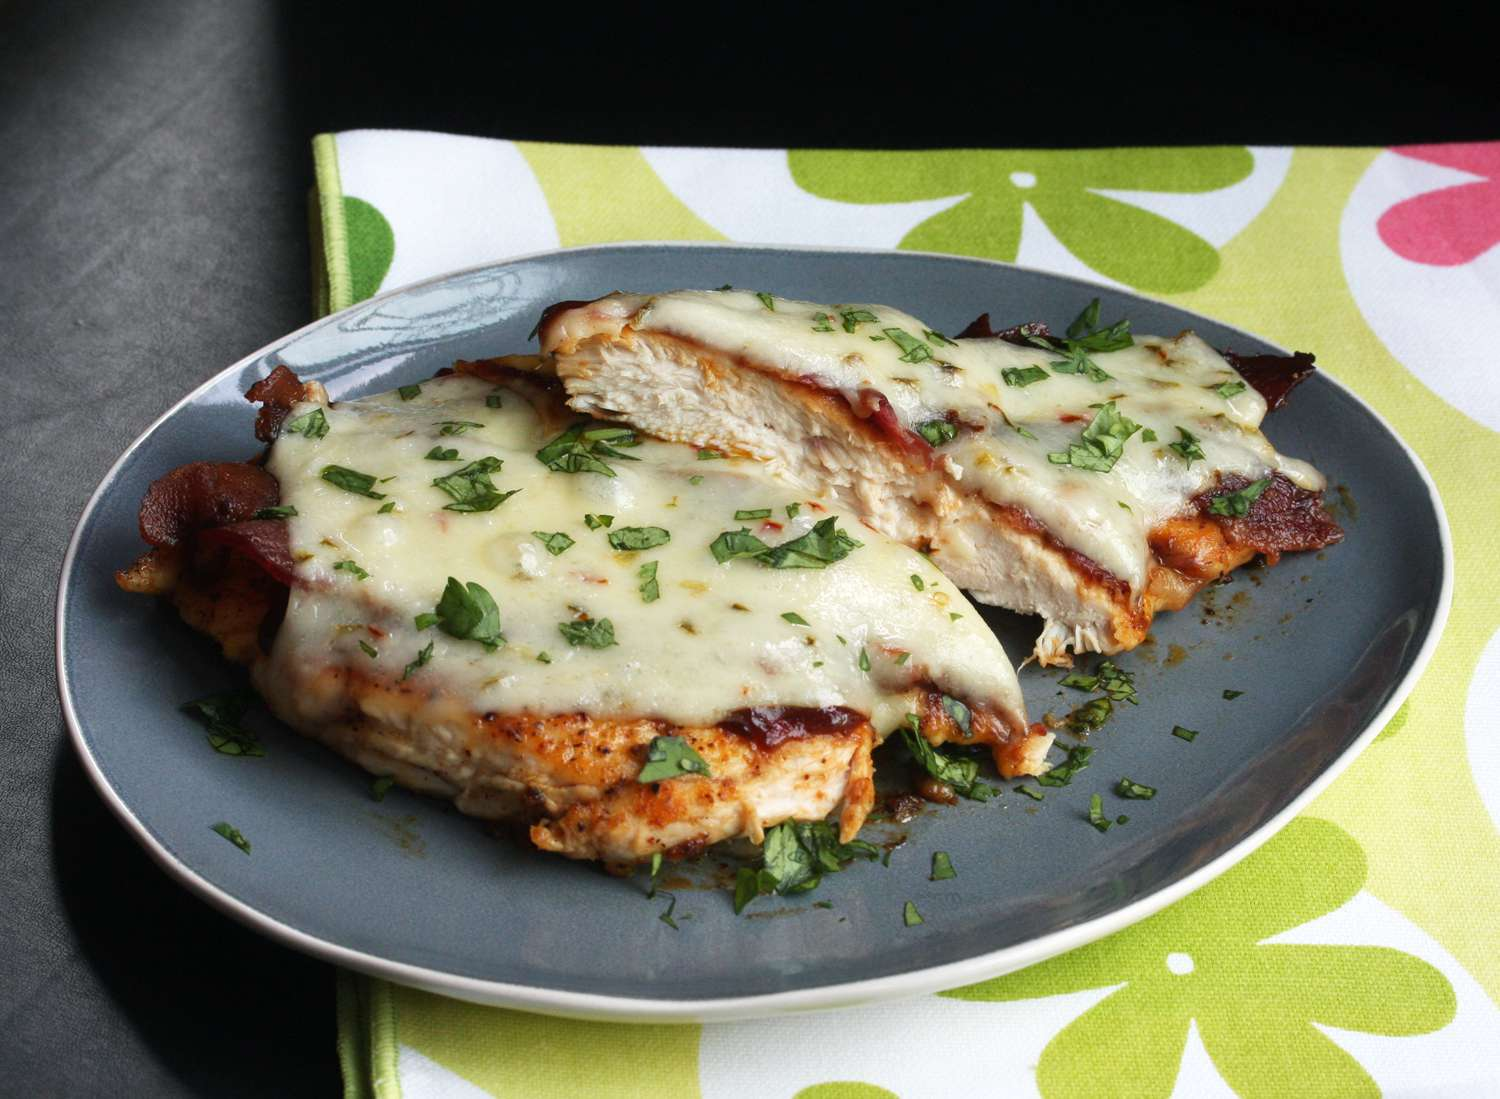 Chicken with Bacon and Cheese